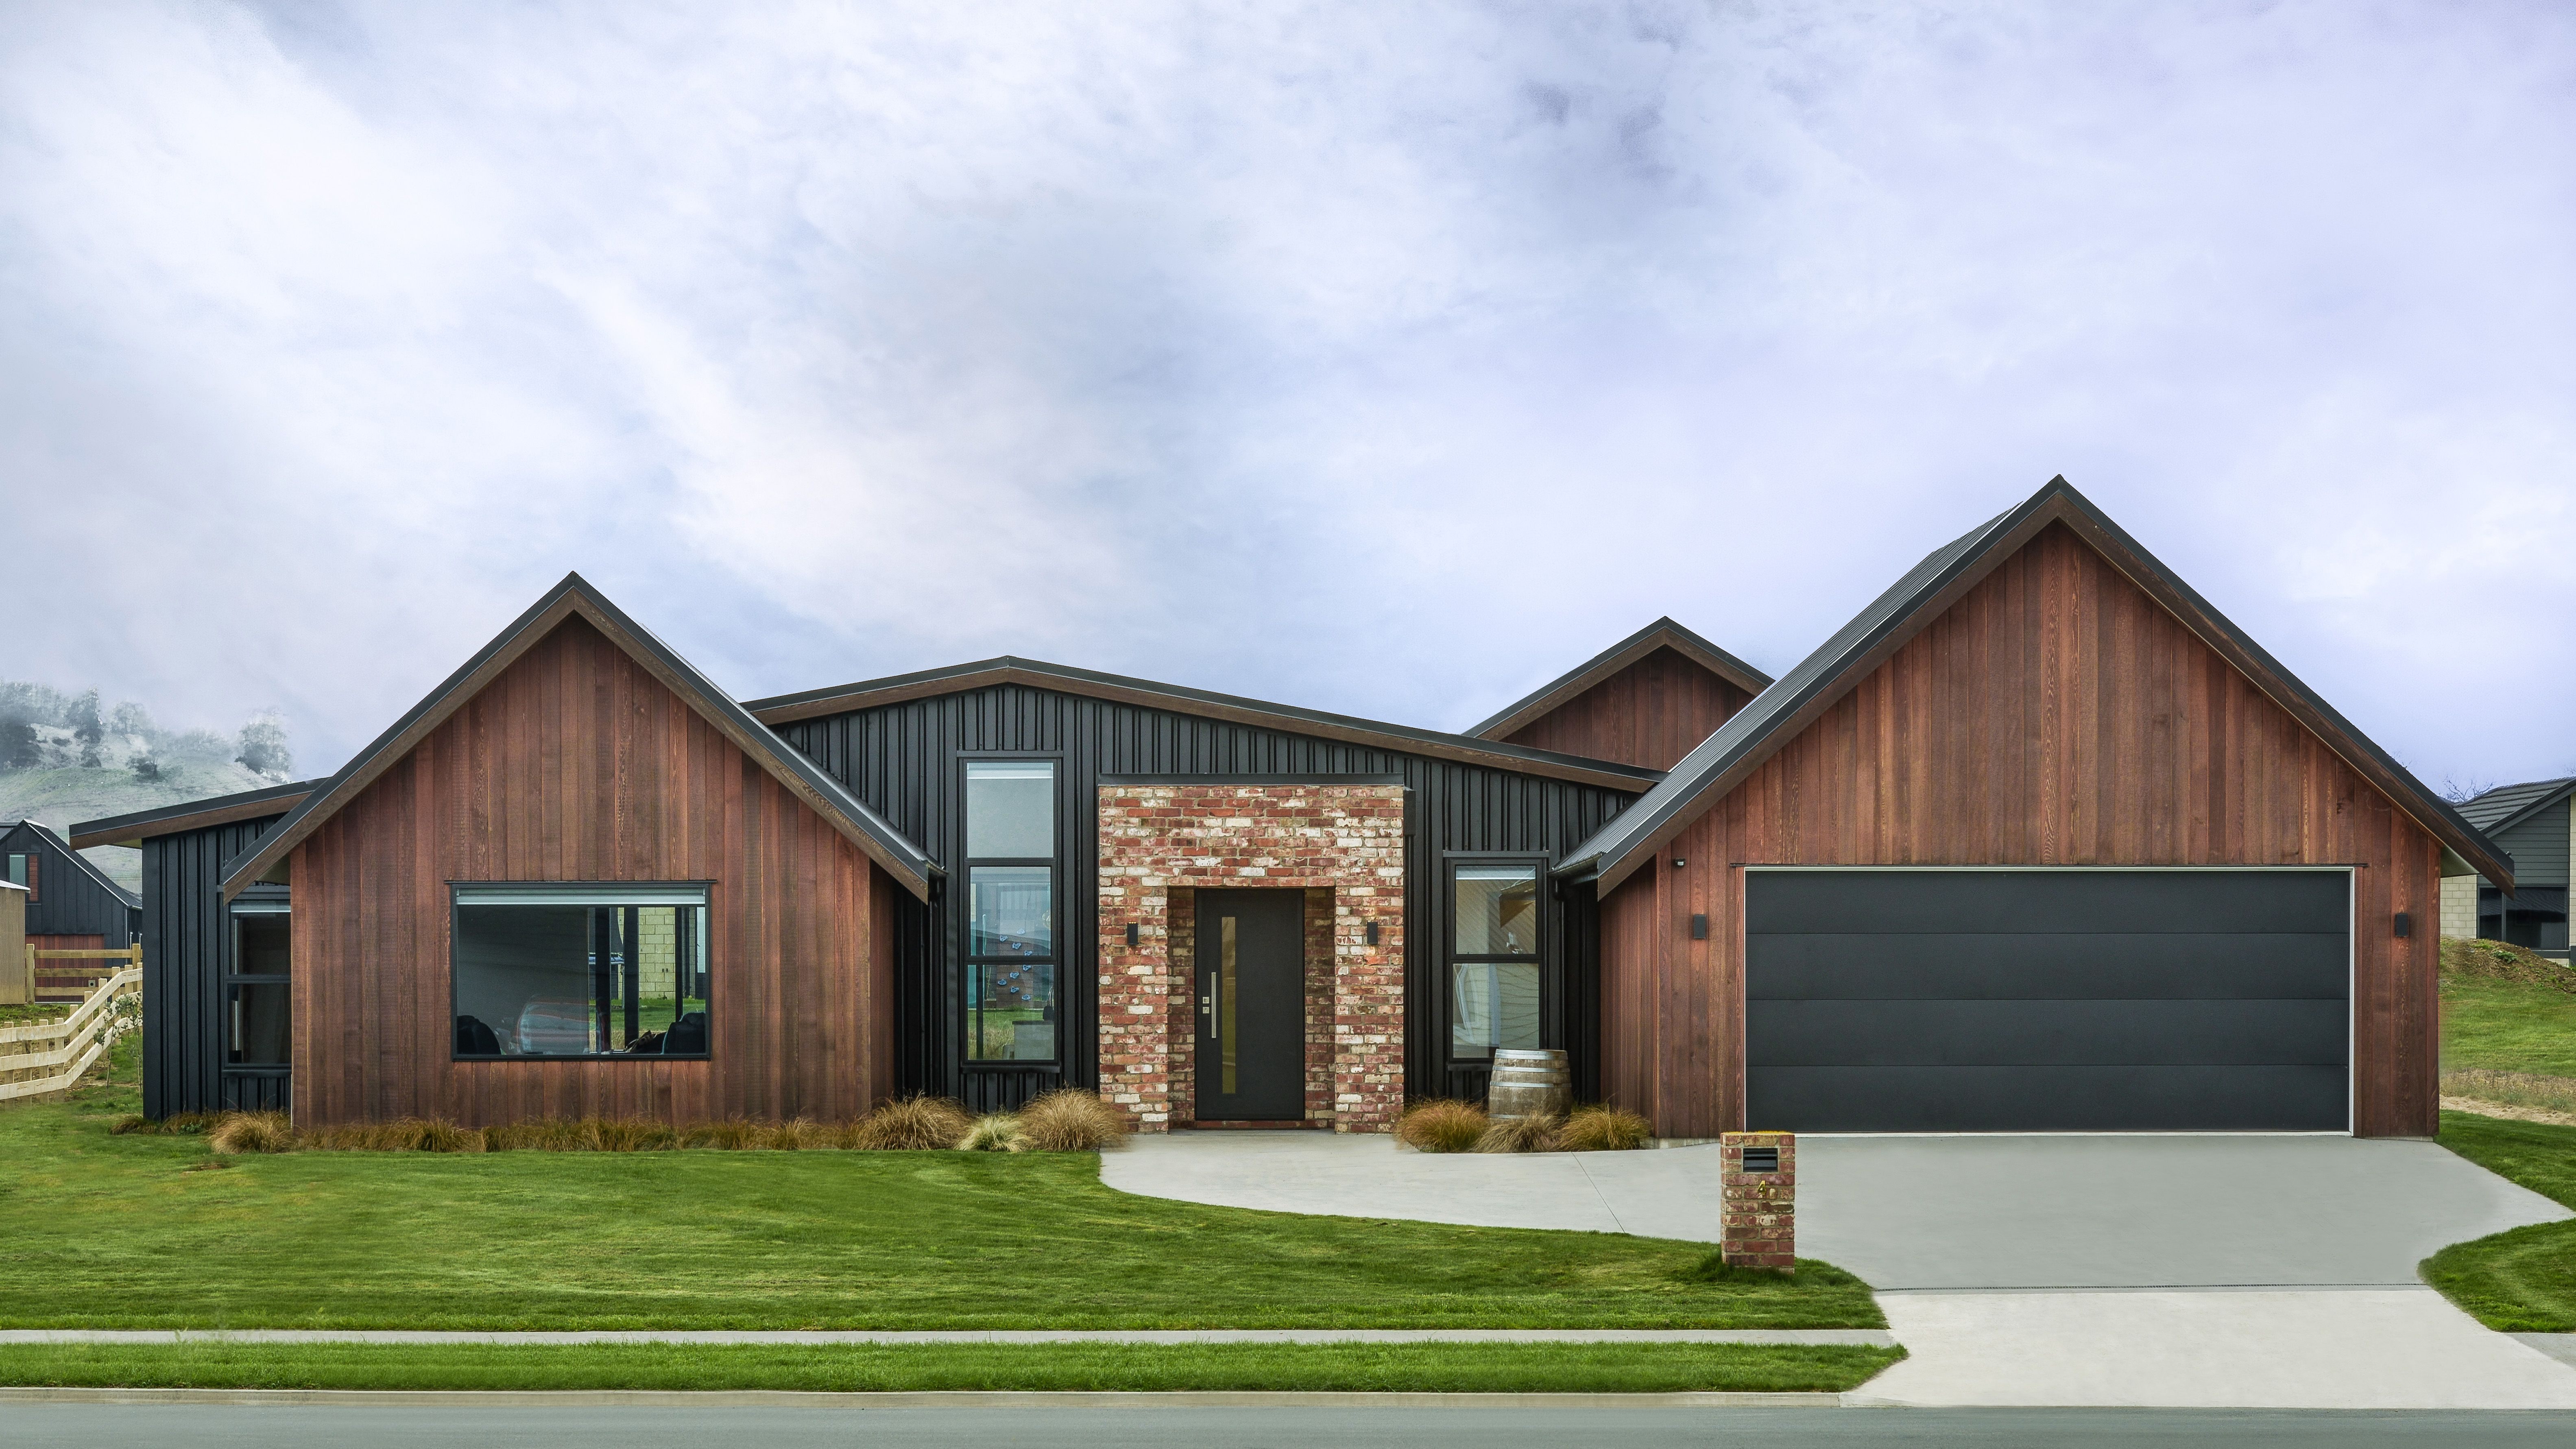 Brick cladding image by Turner Road Architecture on multi